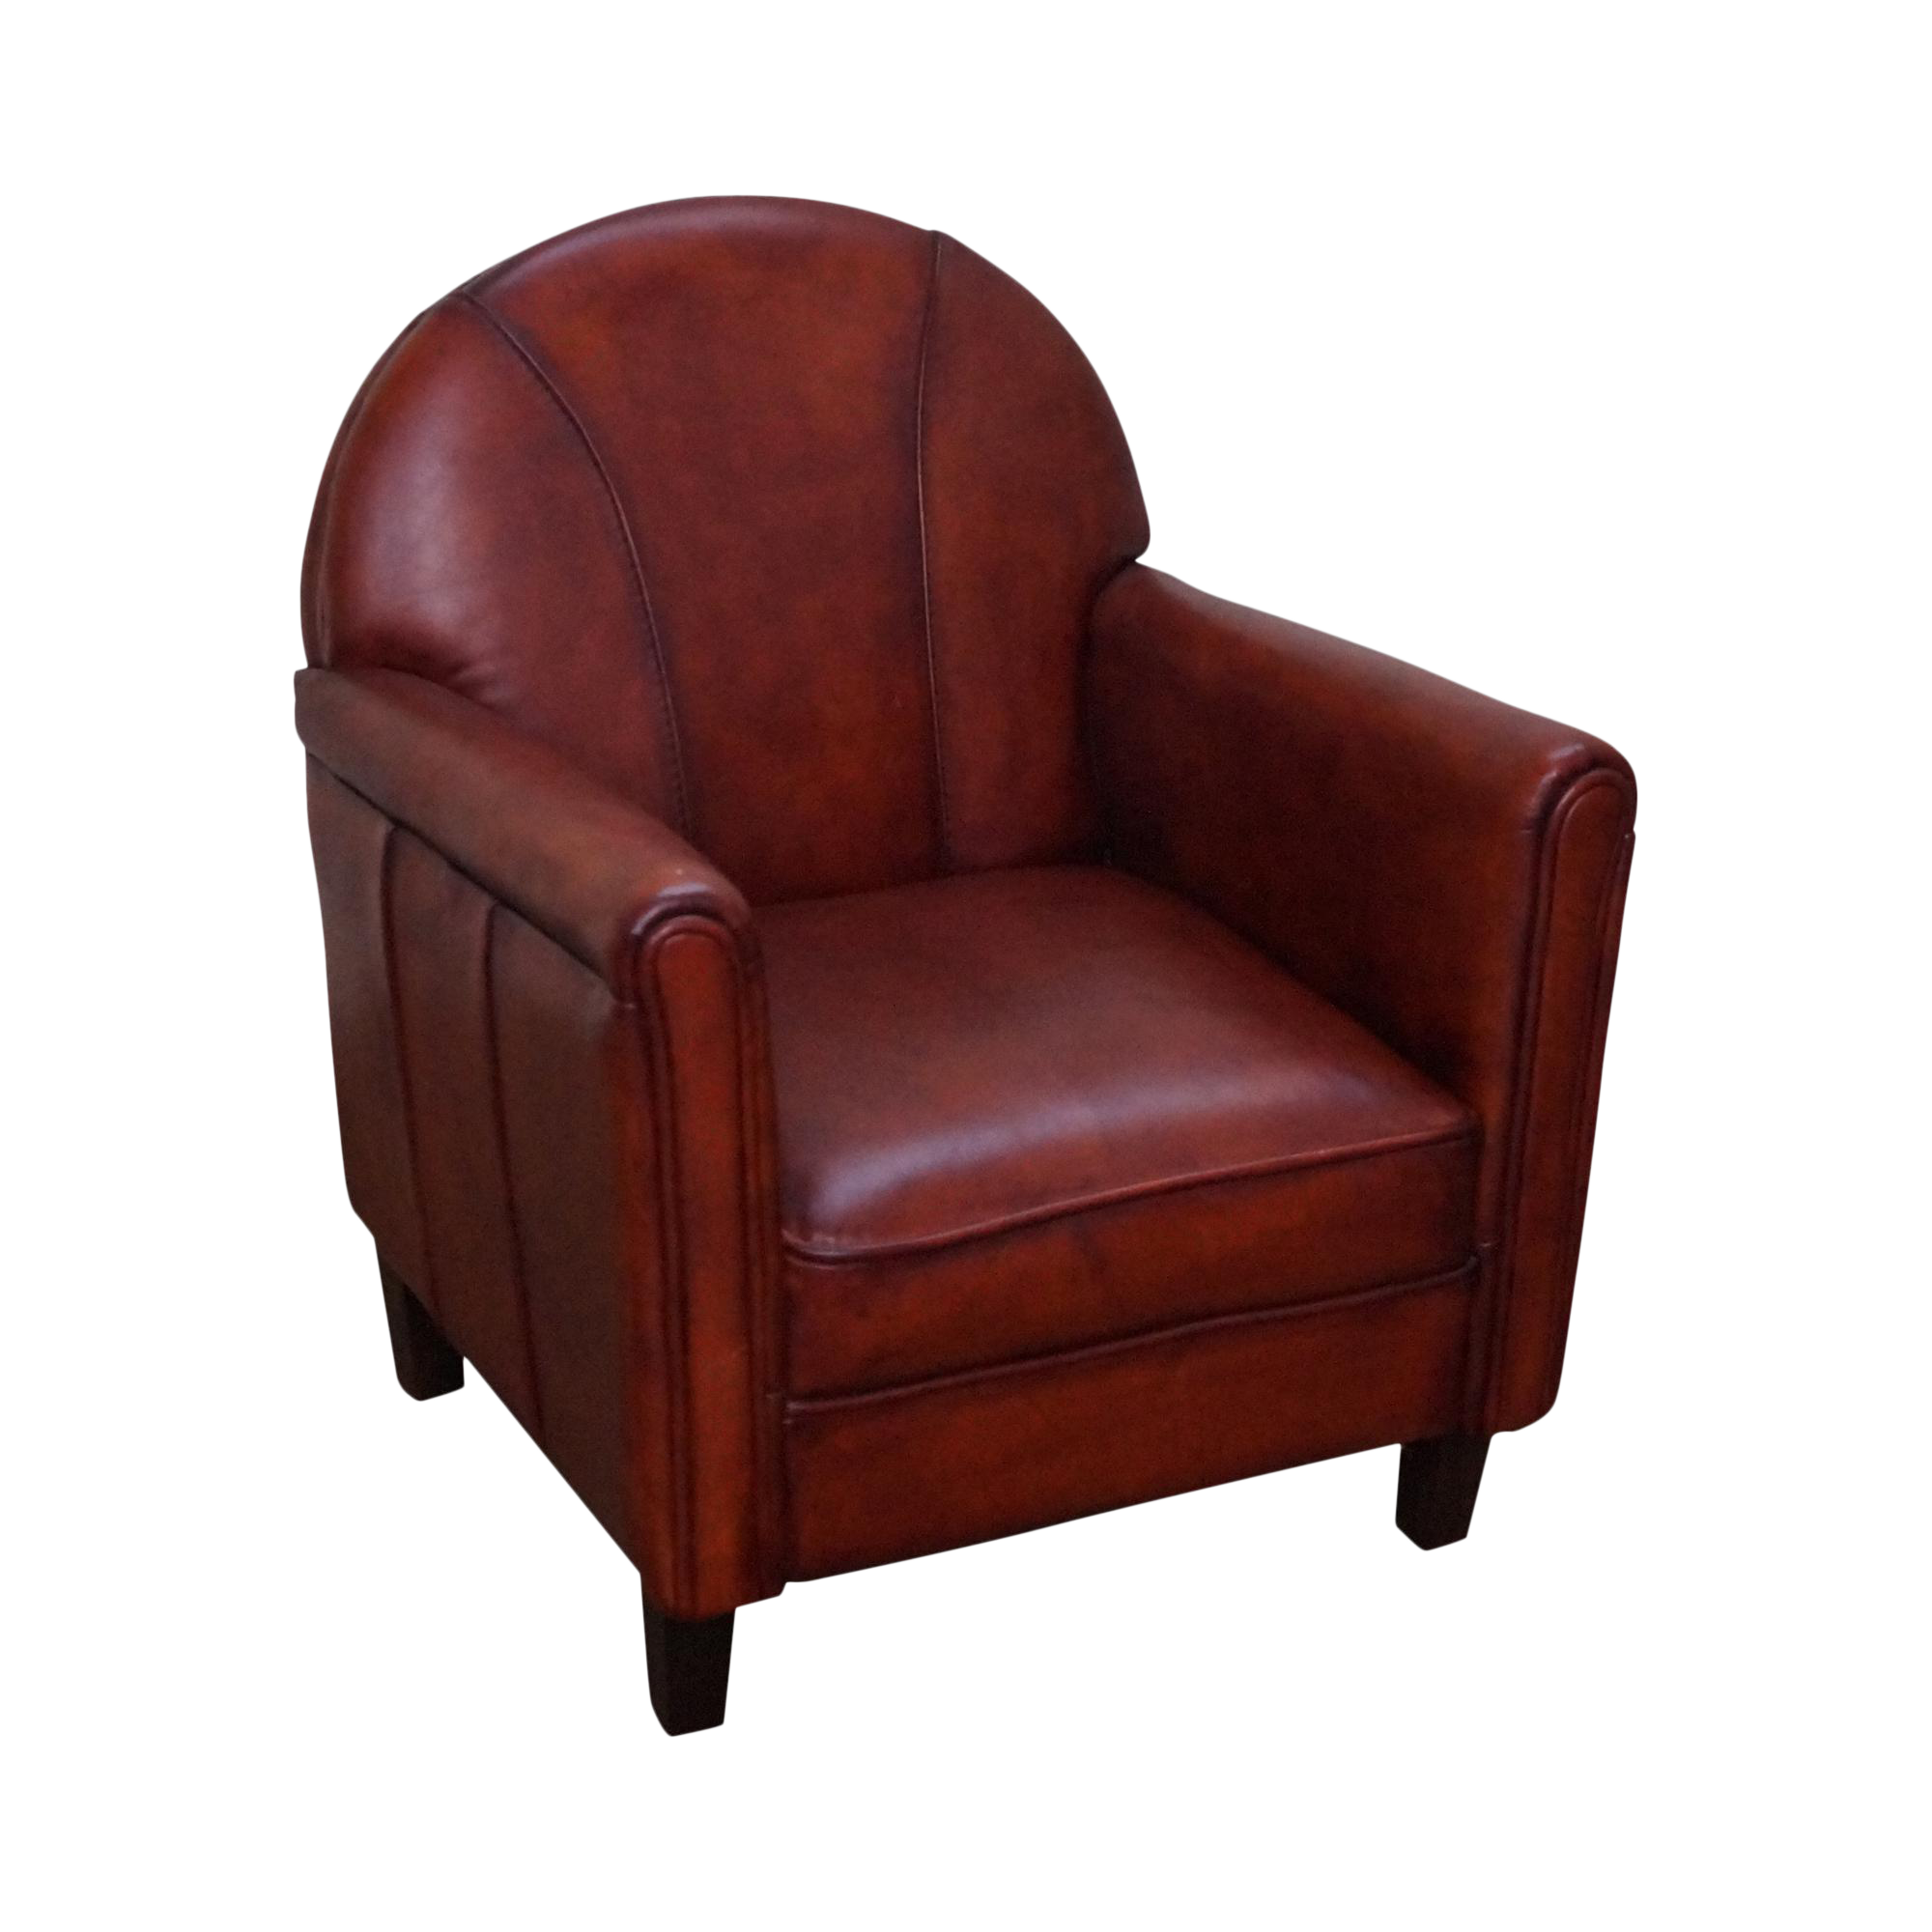 quality french art deco style childs leather club chair - Leather Club Chairs